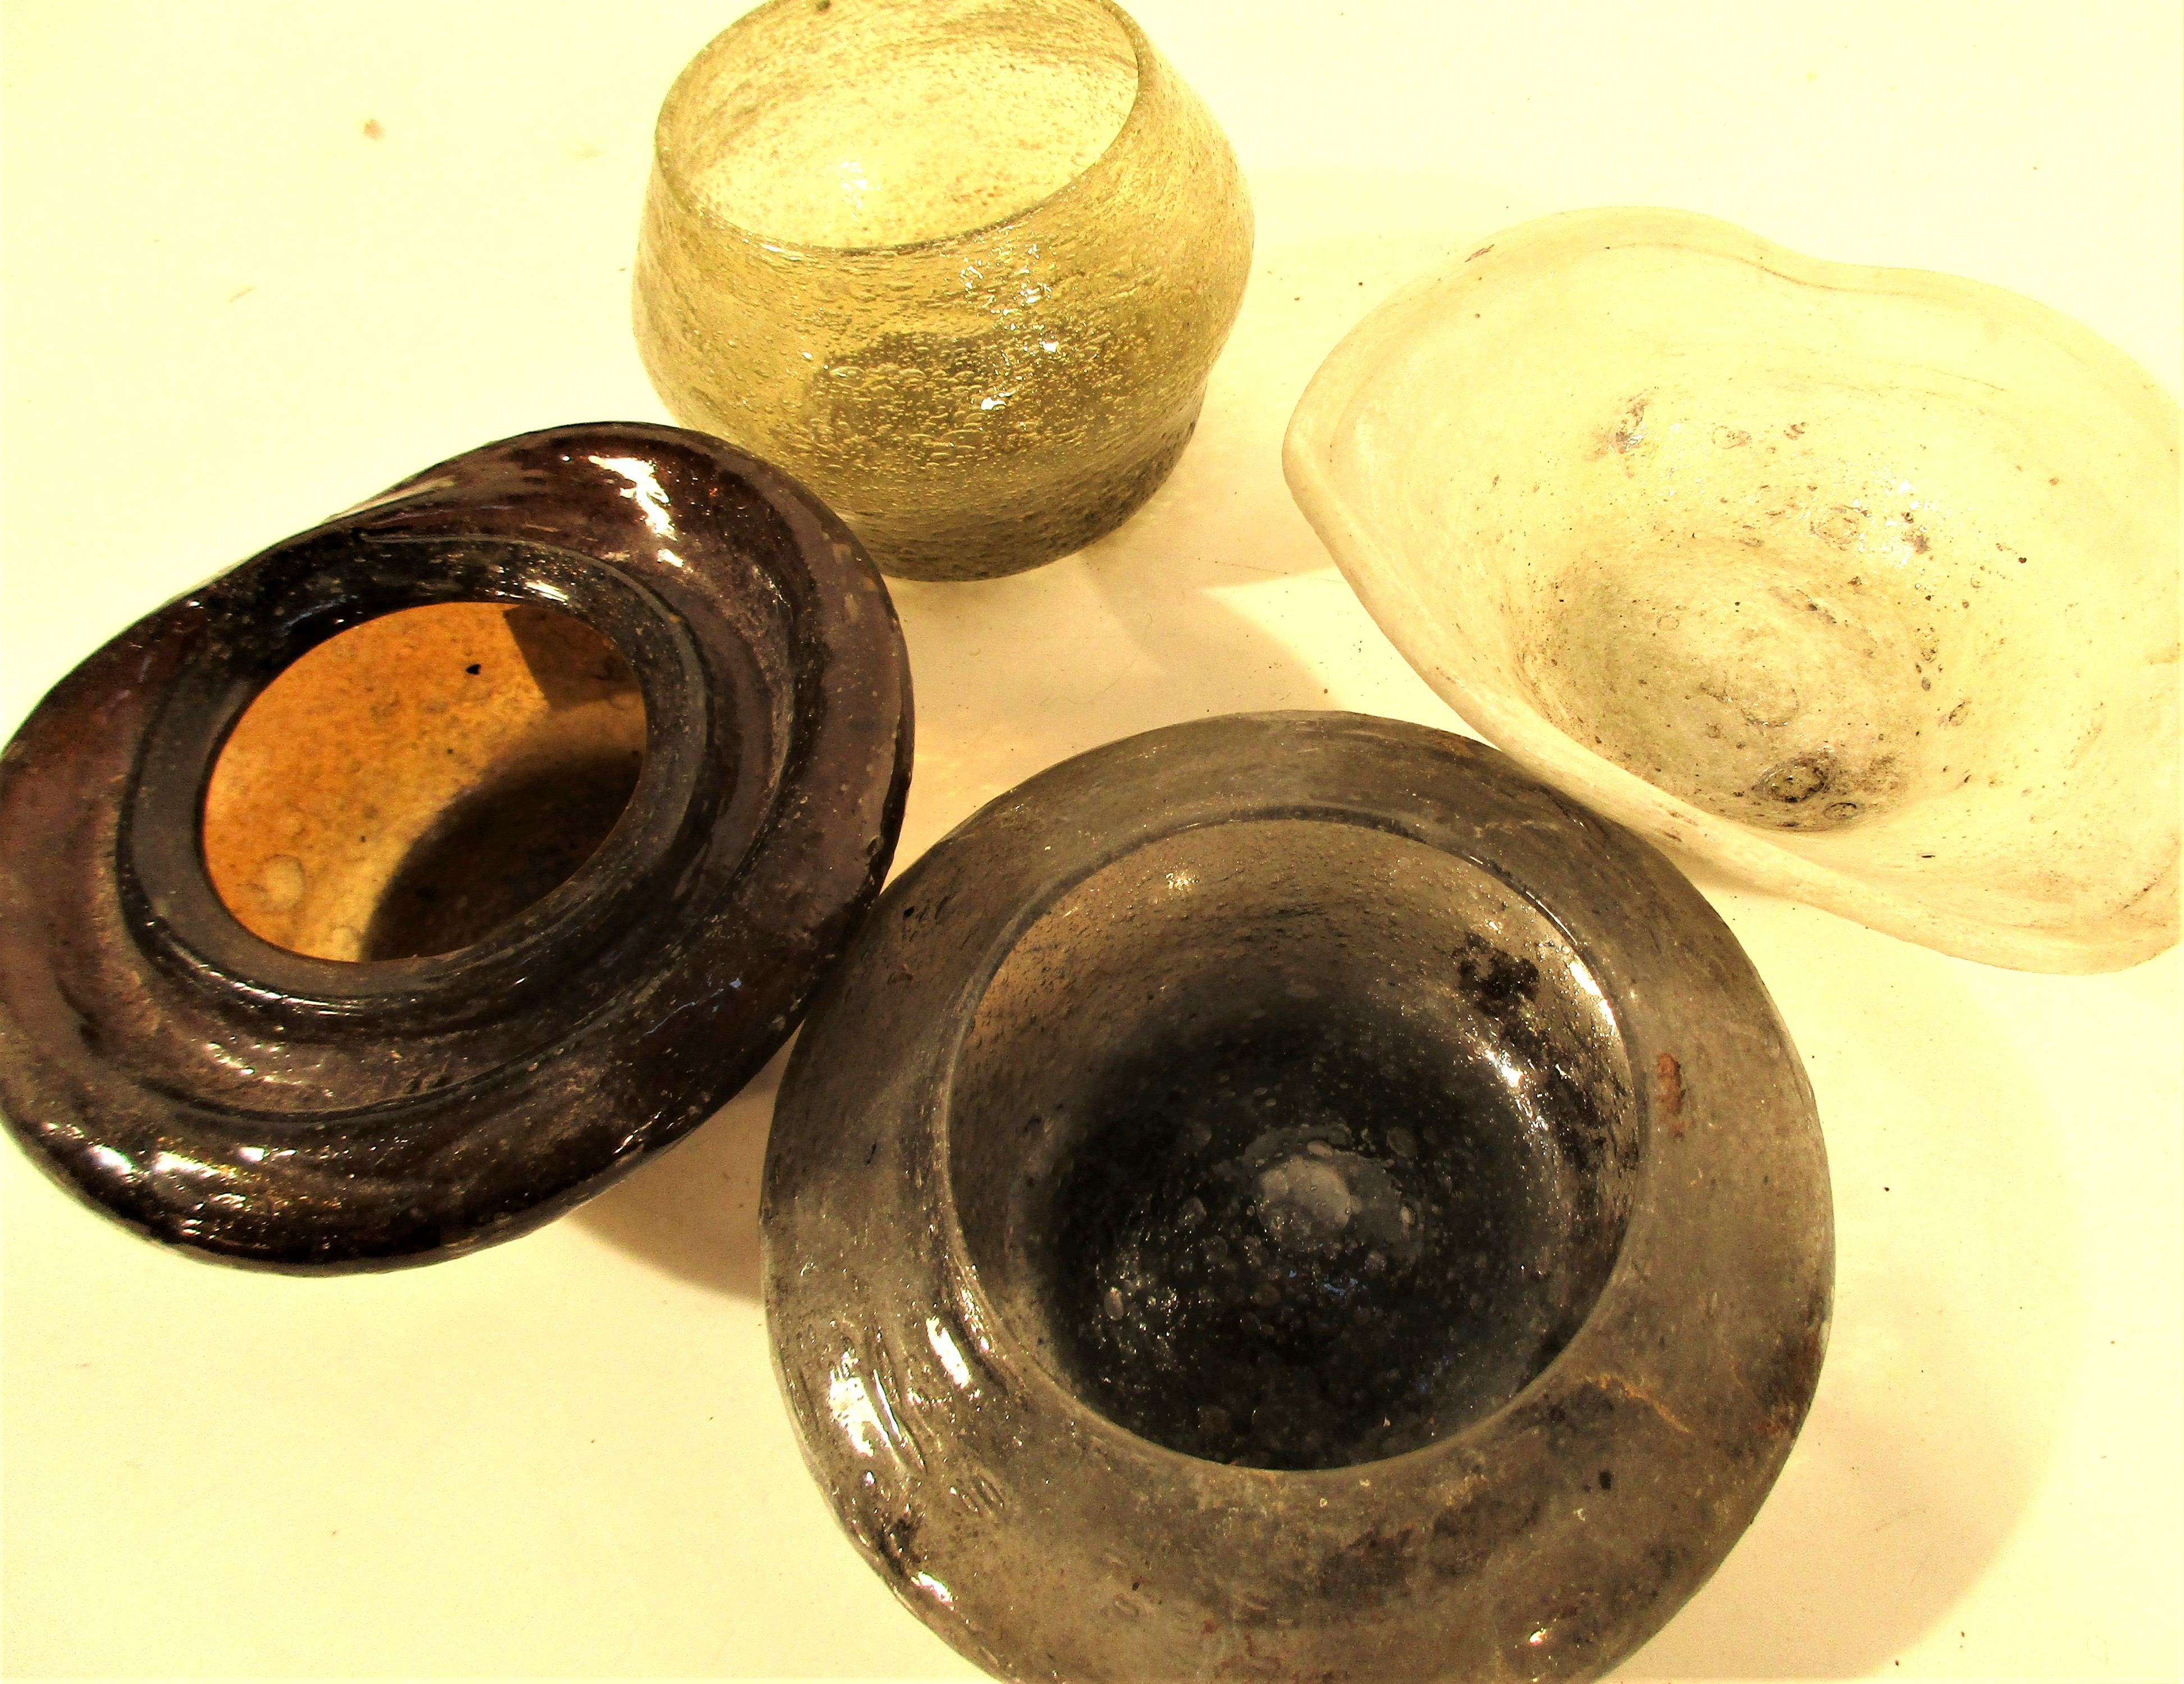 4x Afghan glass dishes. Each about 11 x 5cm. - Image 2 of 2